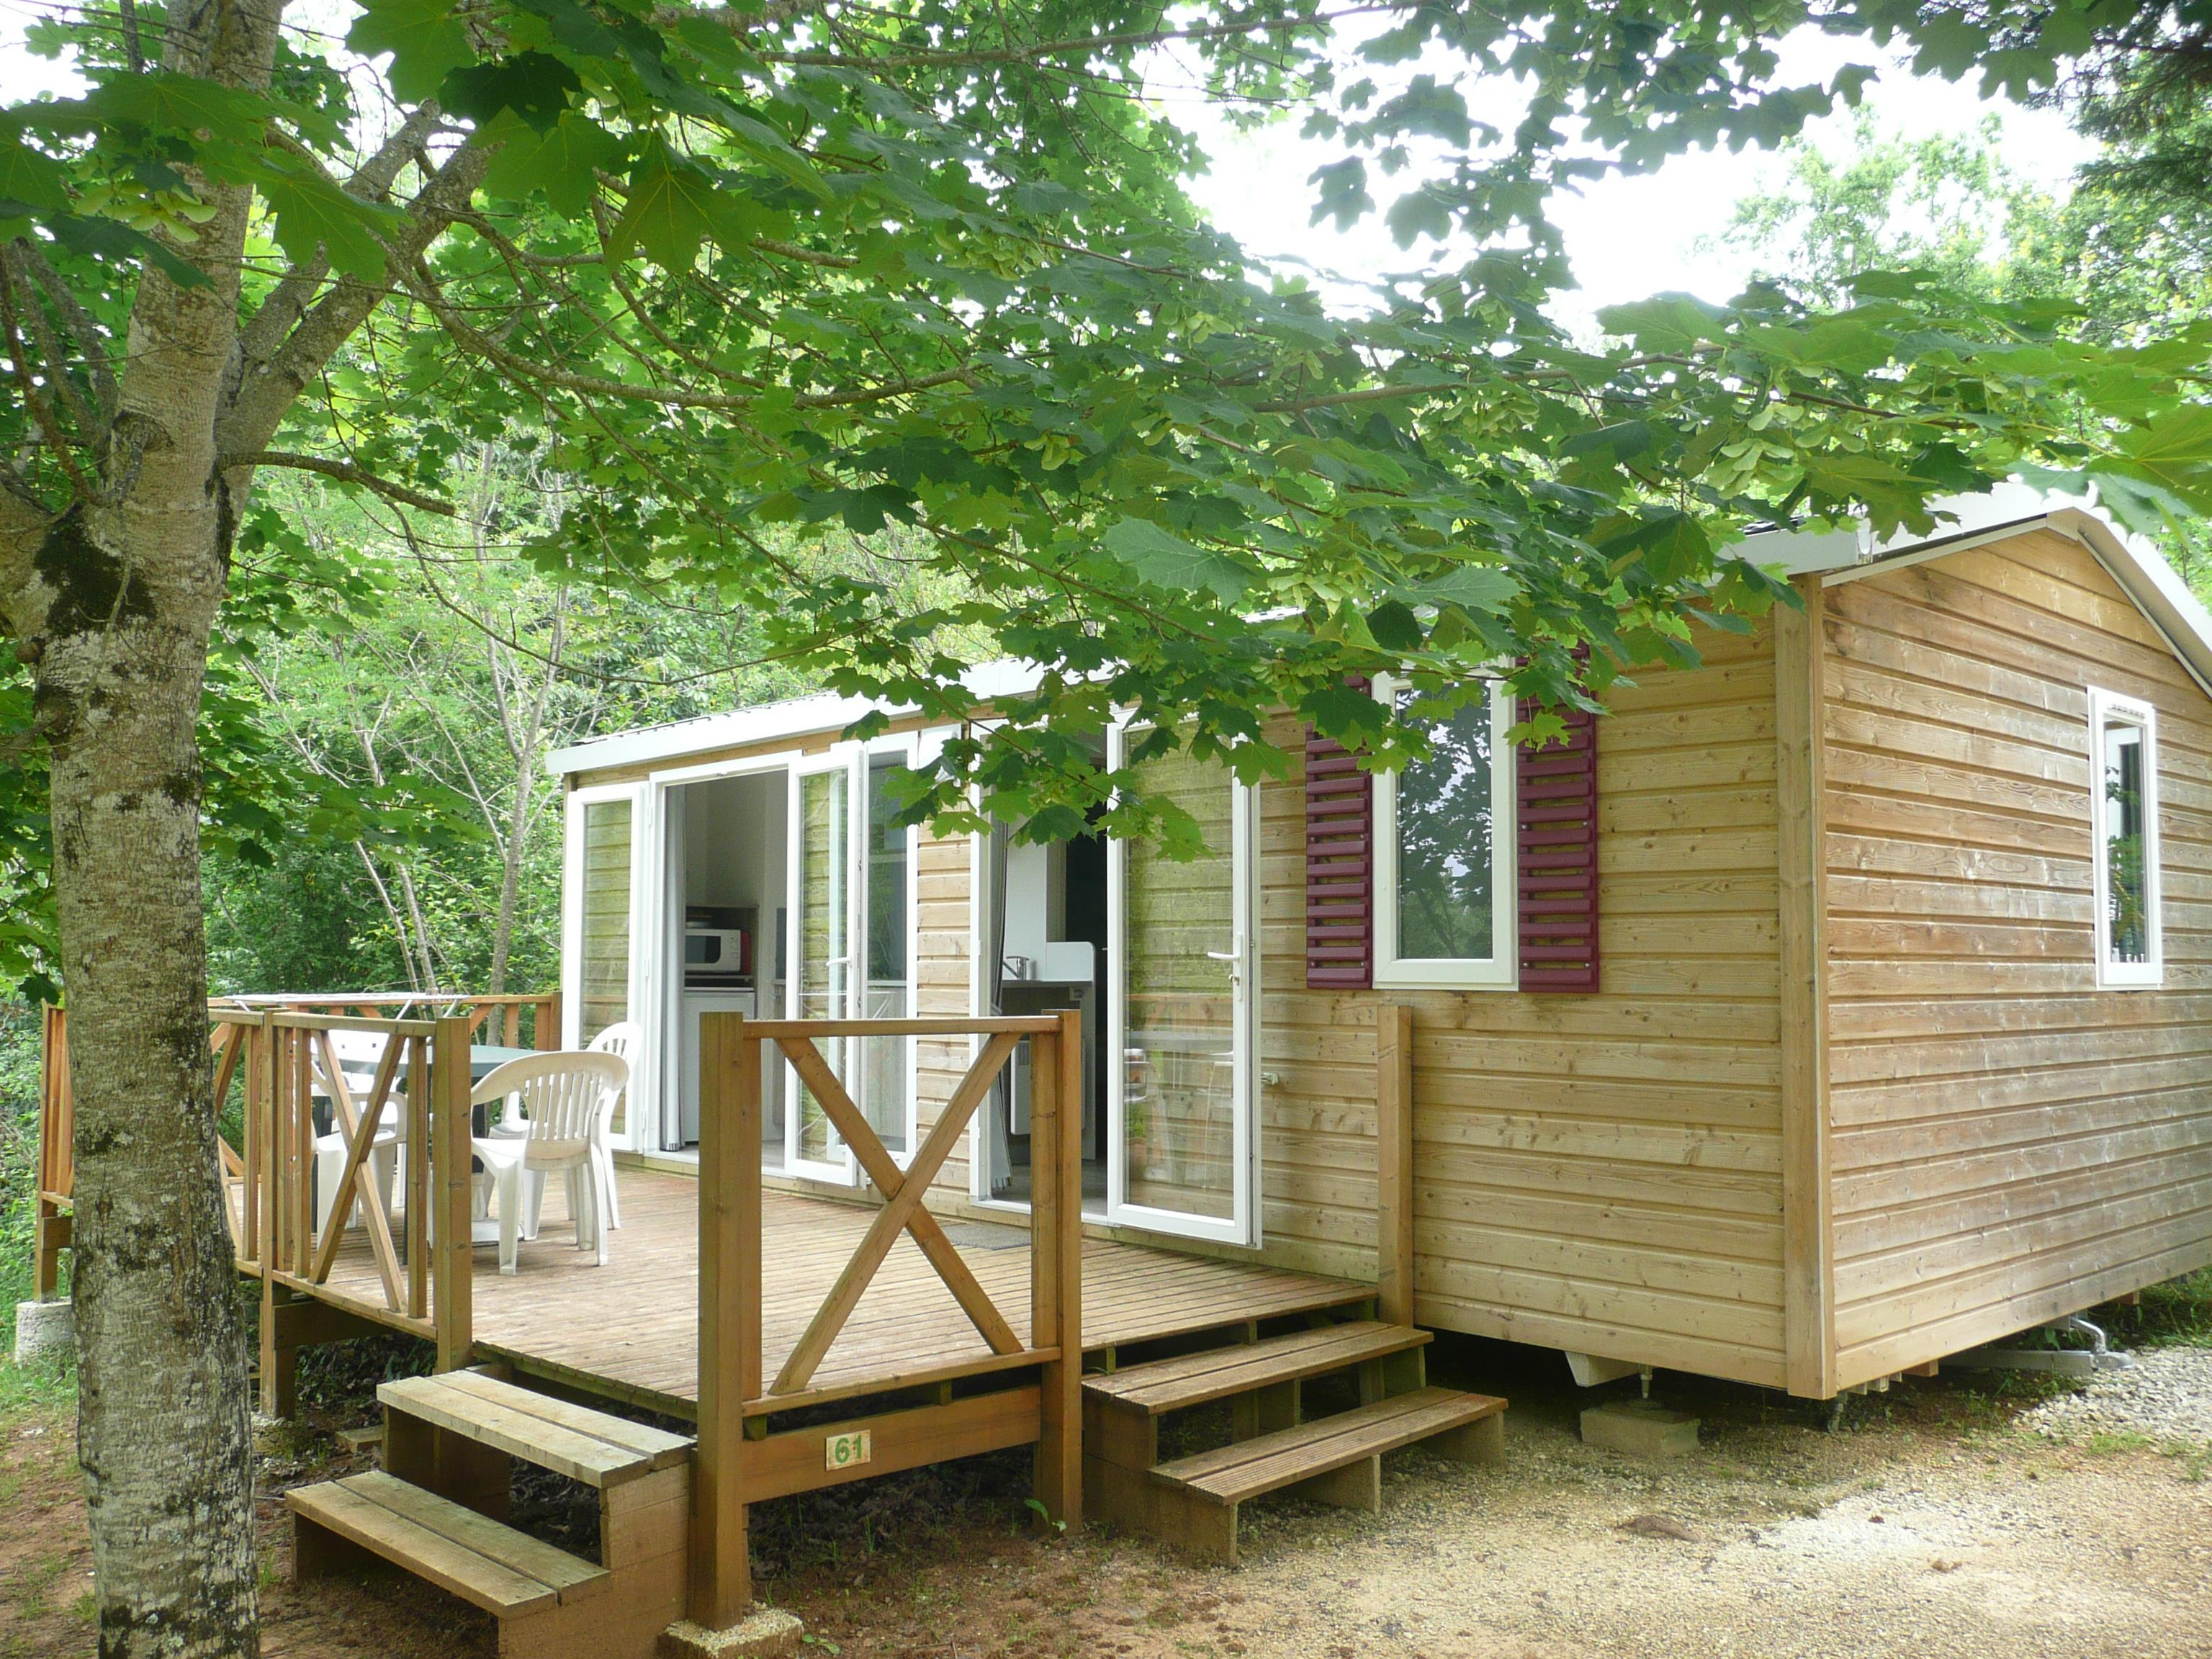 Location - Mercure Riviera, 2 Chambres - Camping Les Charmes